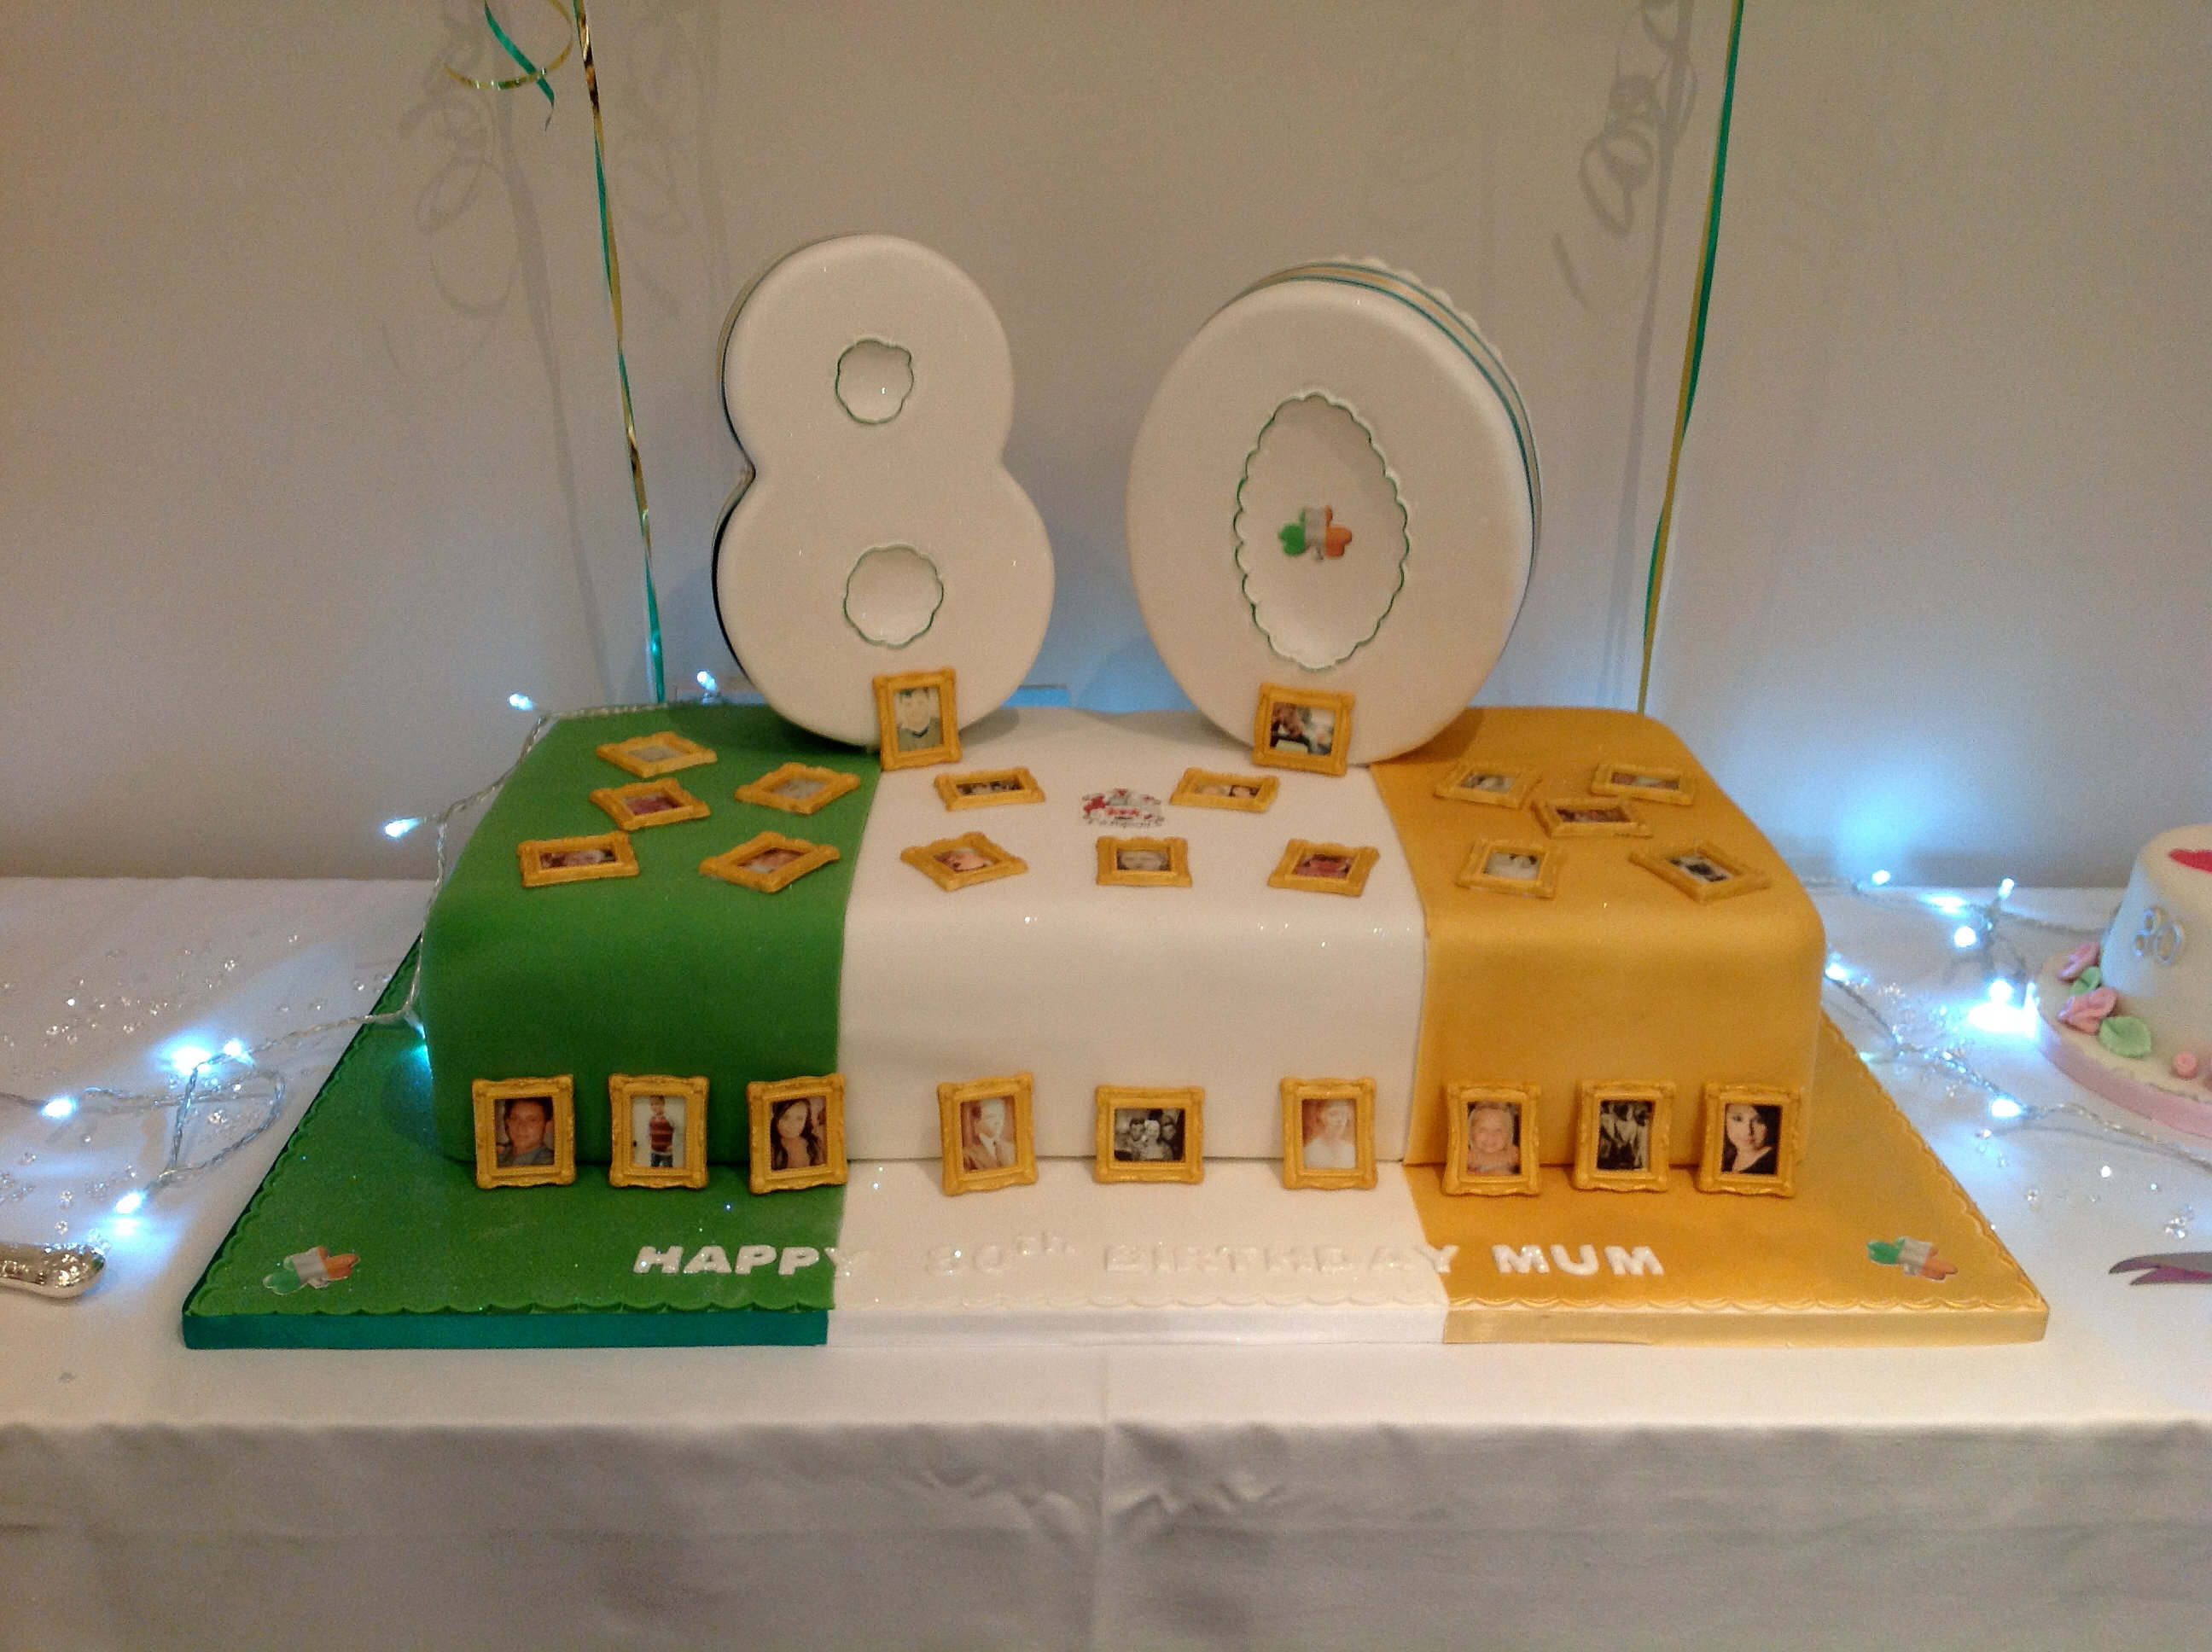 Irish Cake Decorating And Sugarcraft Chat : Says Sugarcraft, Eltham Cake Shop 80th Irish Birthday